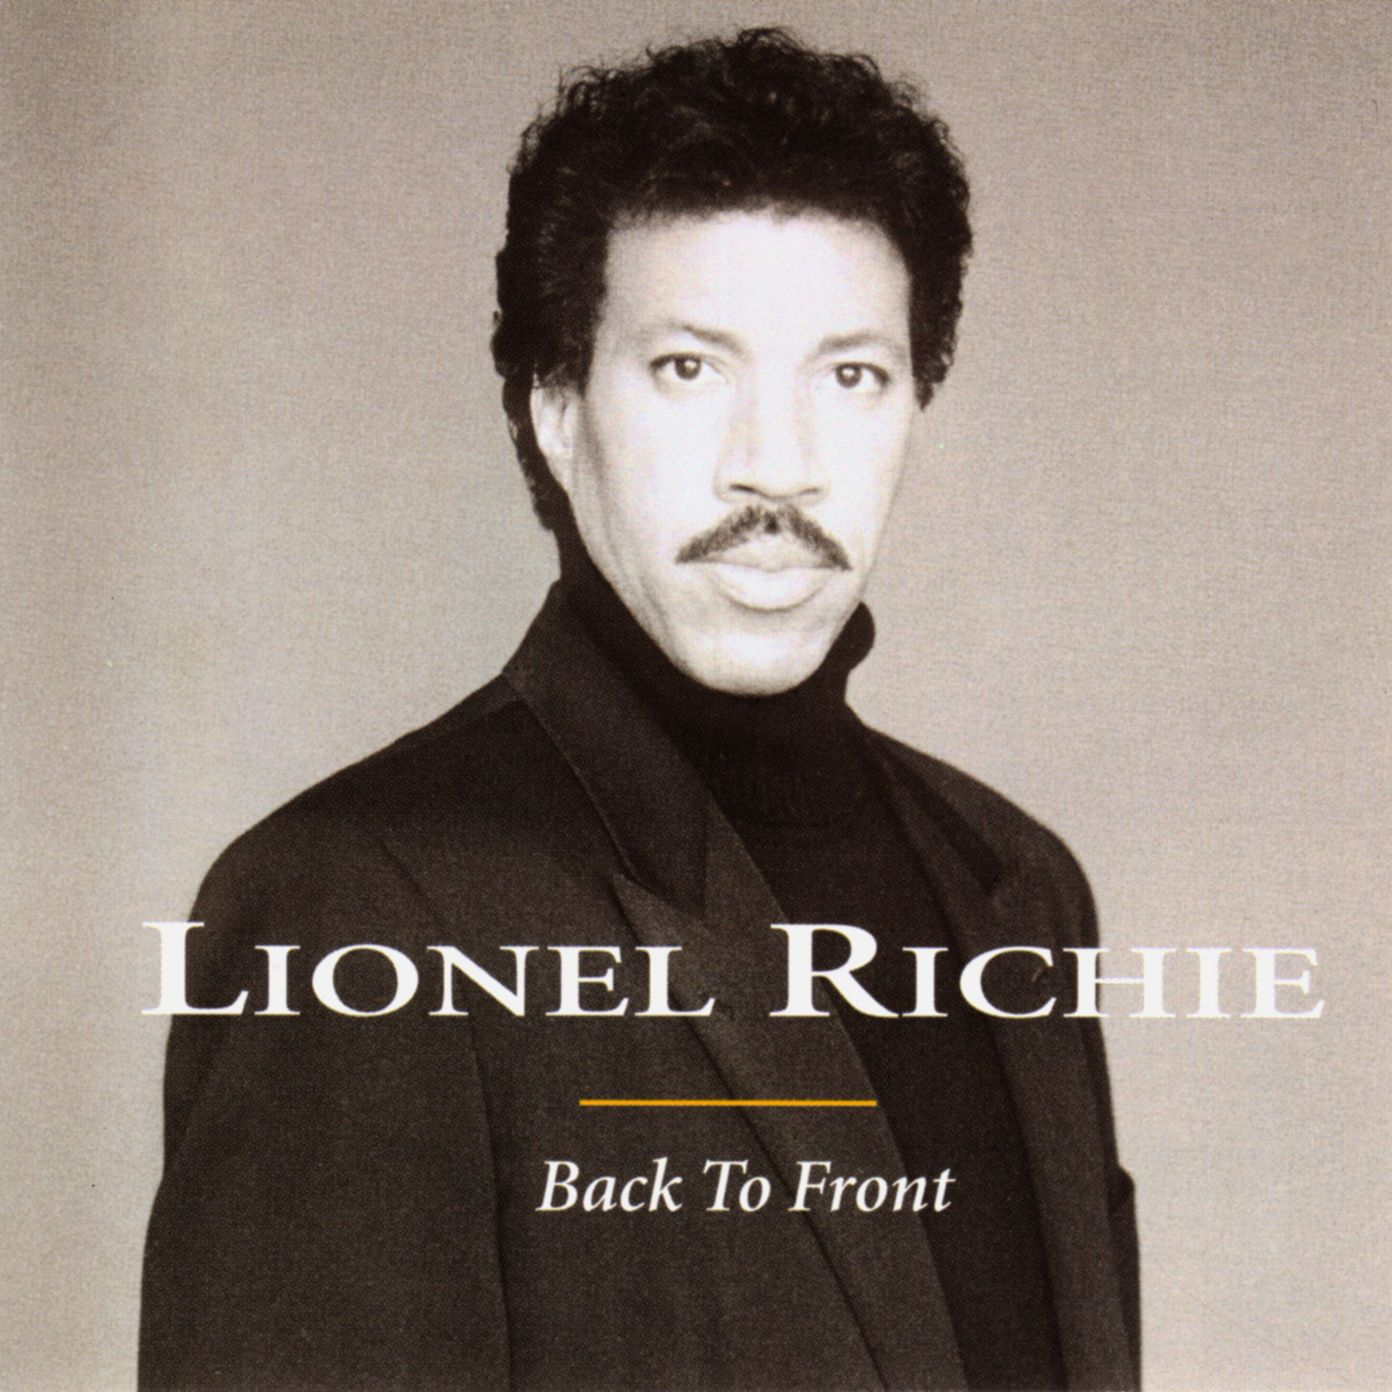 Lionel Richie - Back To Front album cover